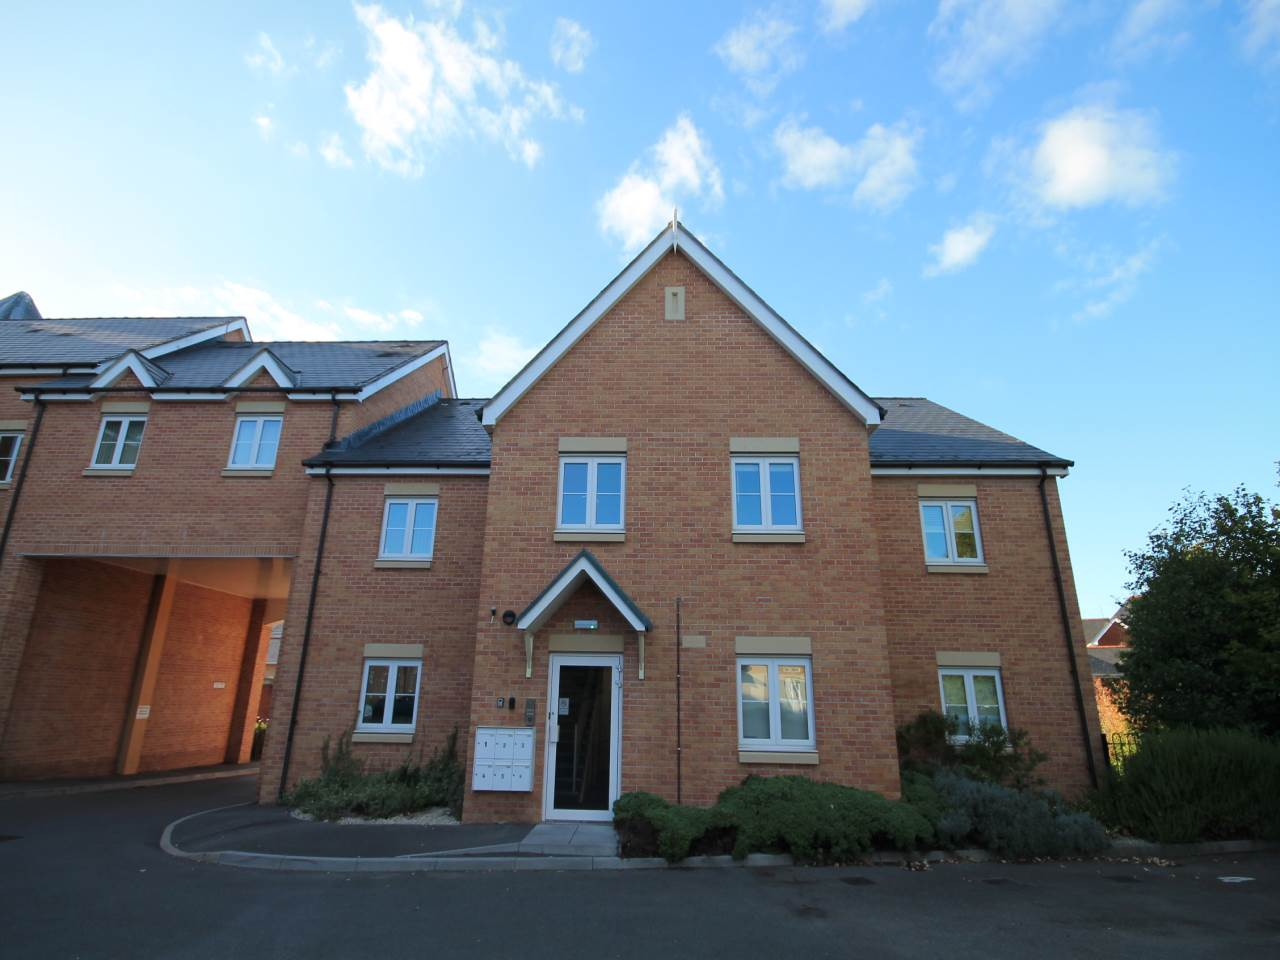 3 Castle Mews, Northview Terrace, Caerphilly, CF83 1PY